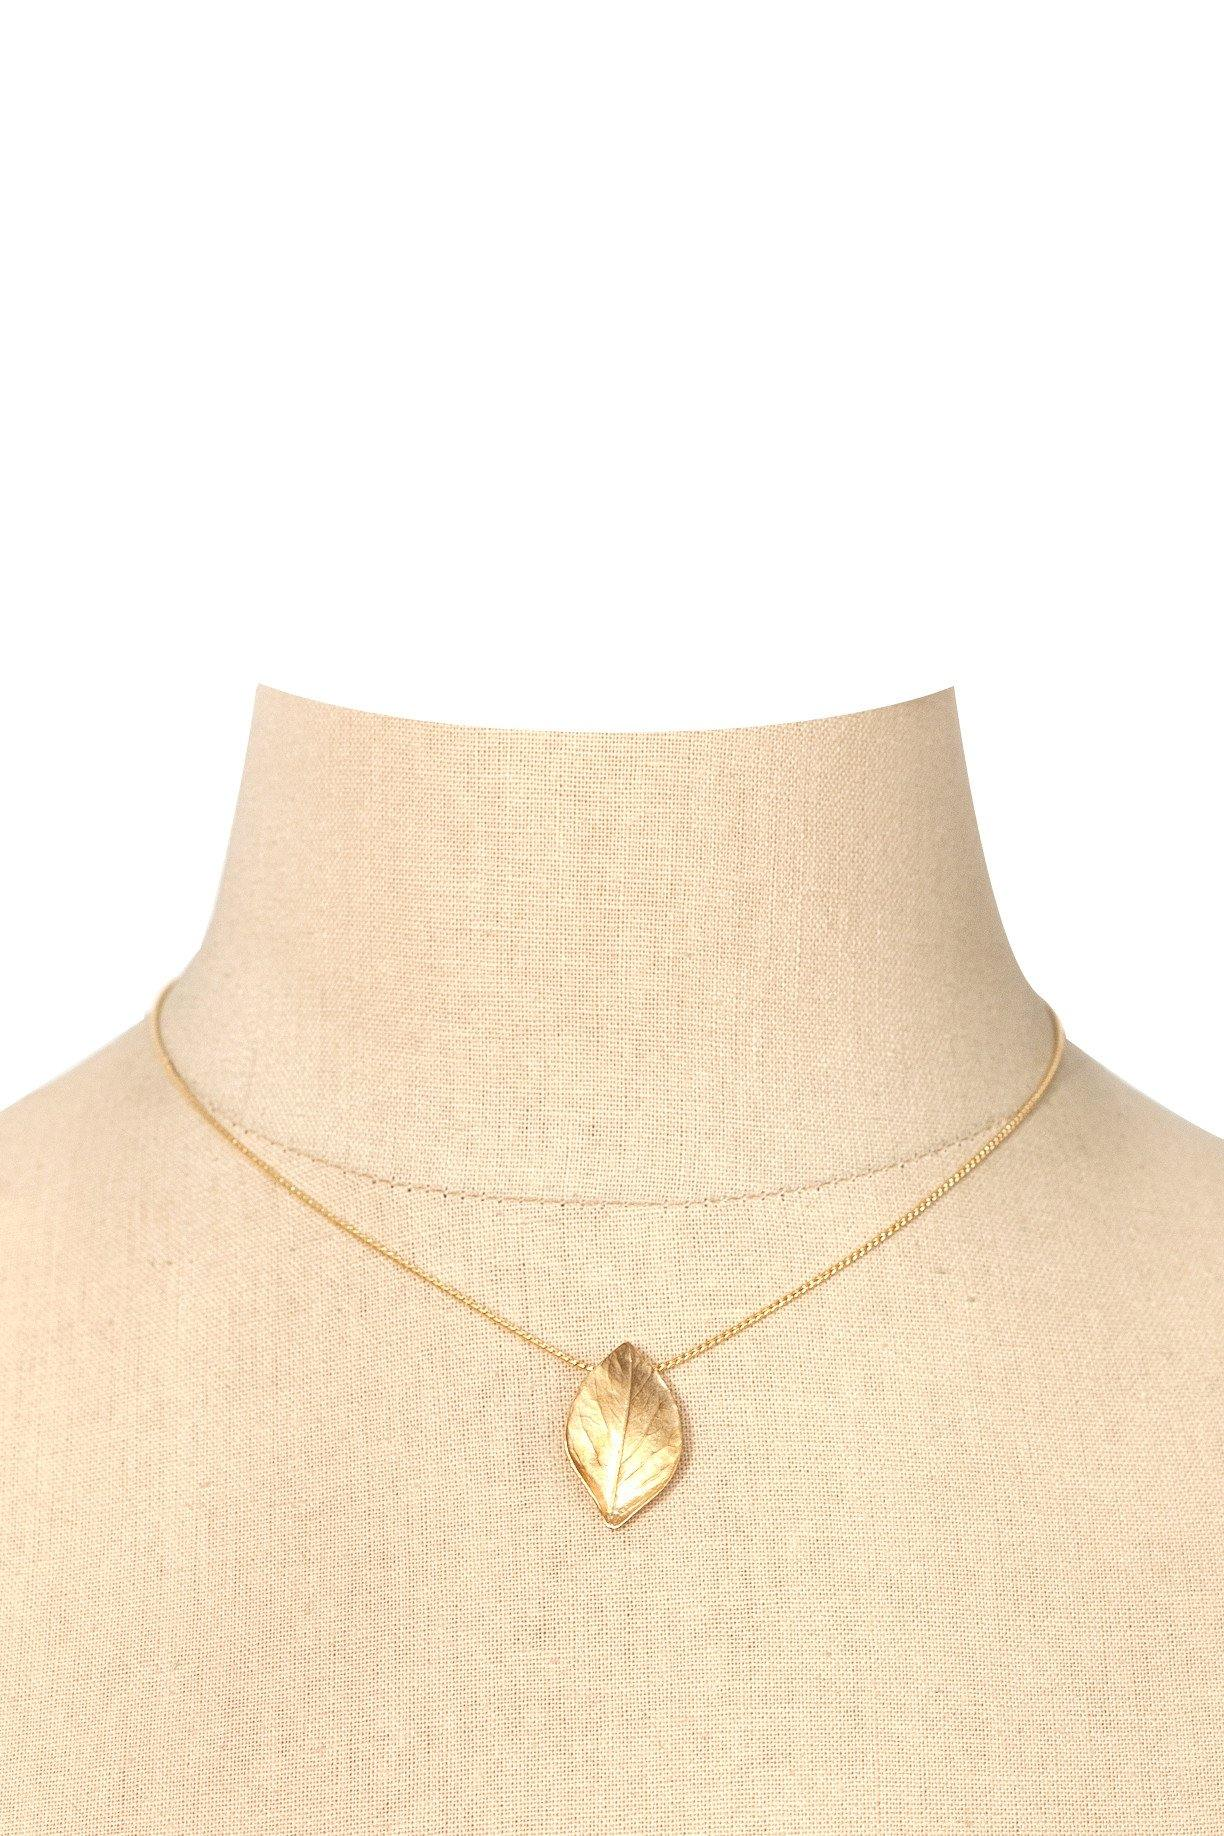 70's__Trifari__Etched Leaf Pendant Necklace